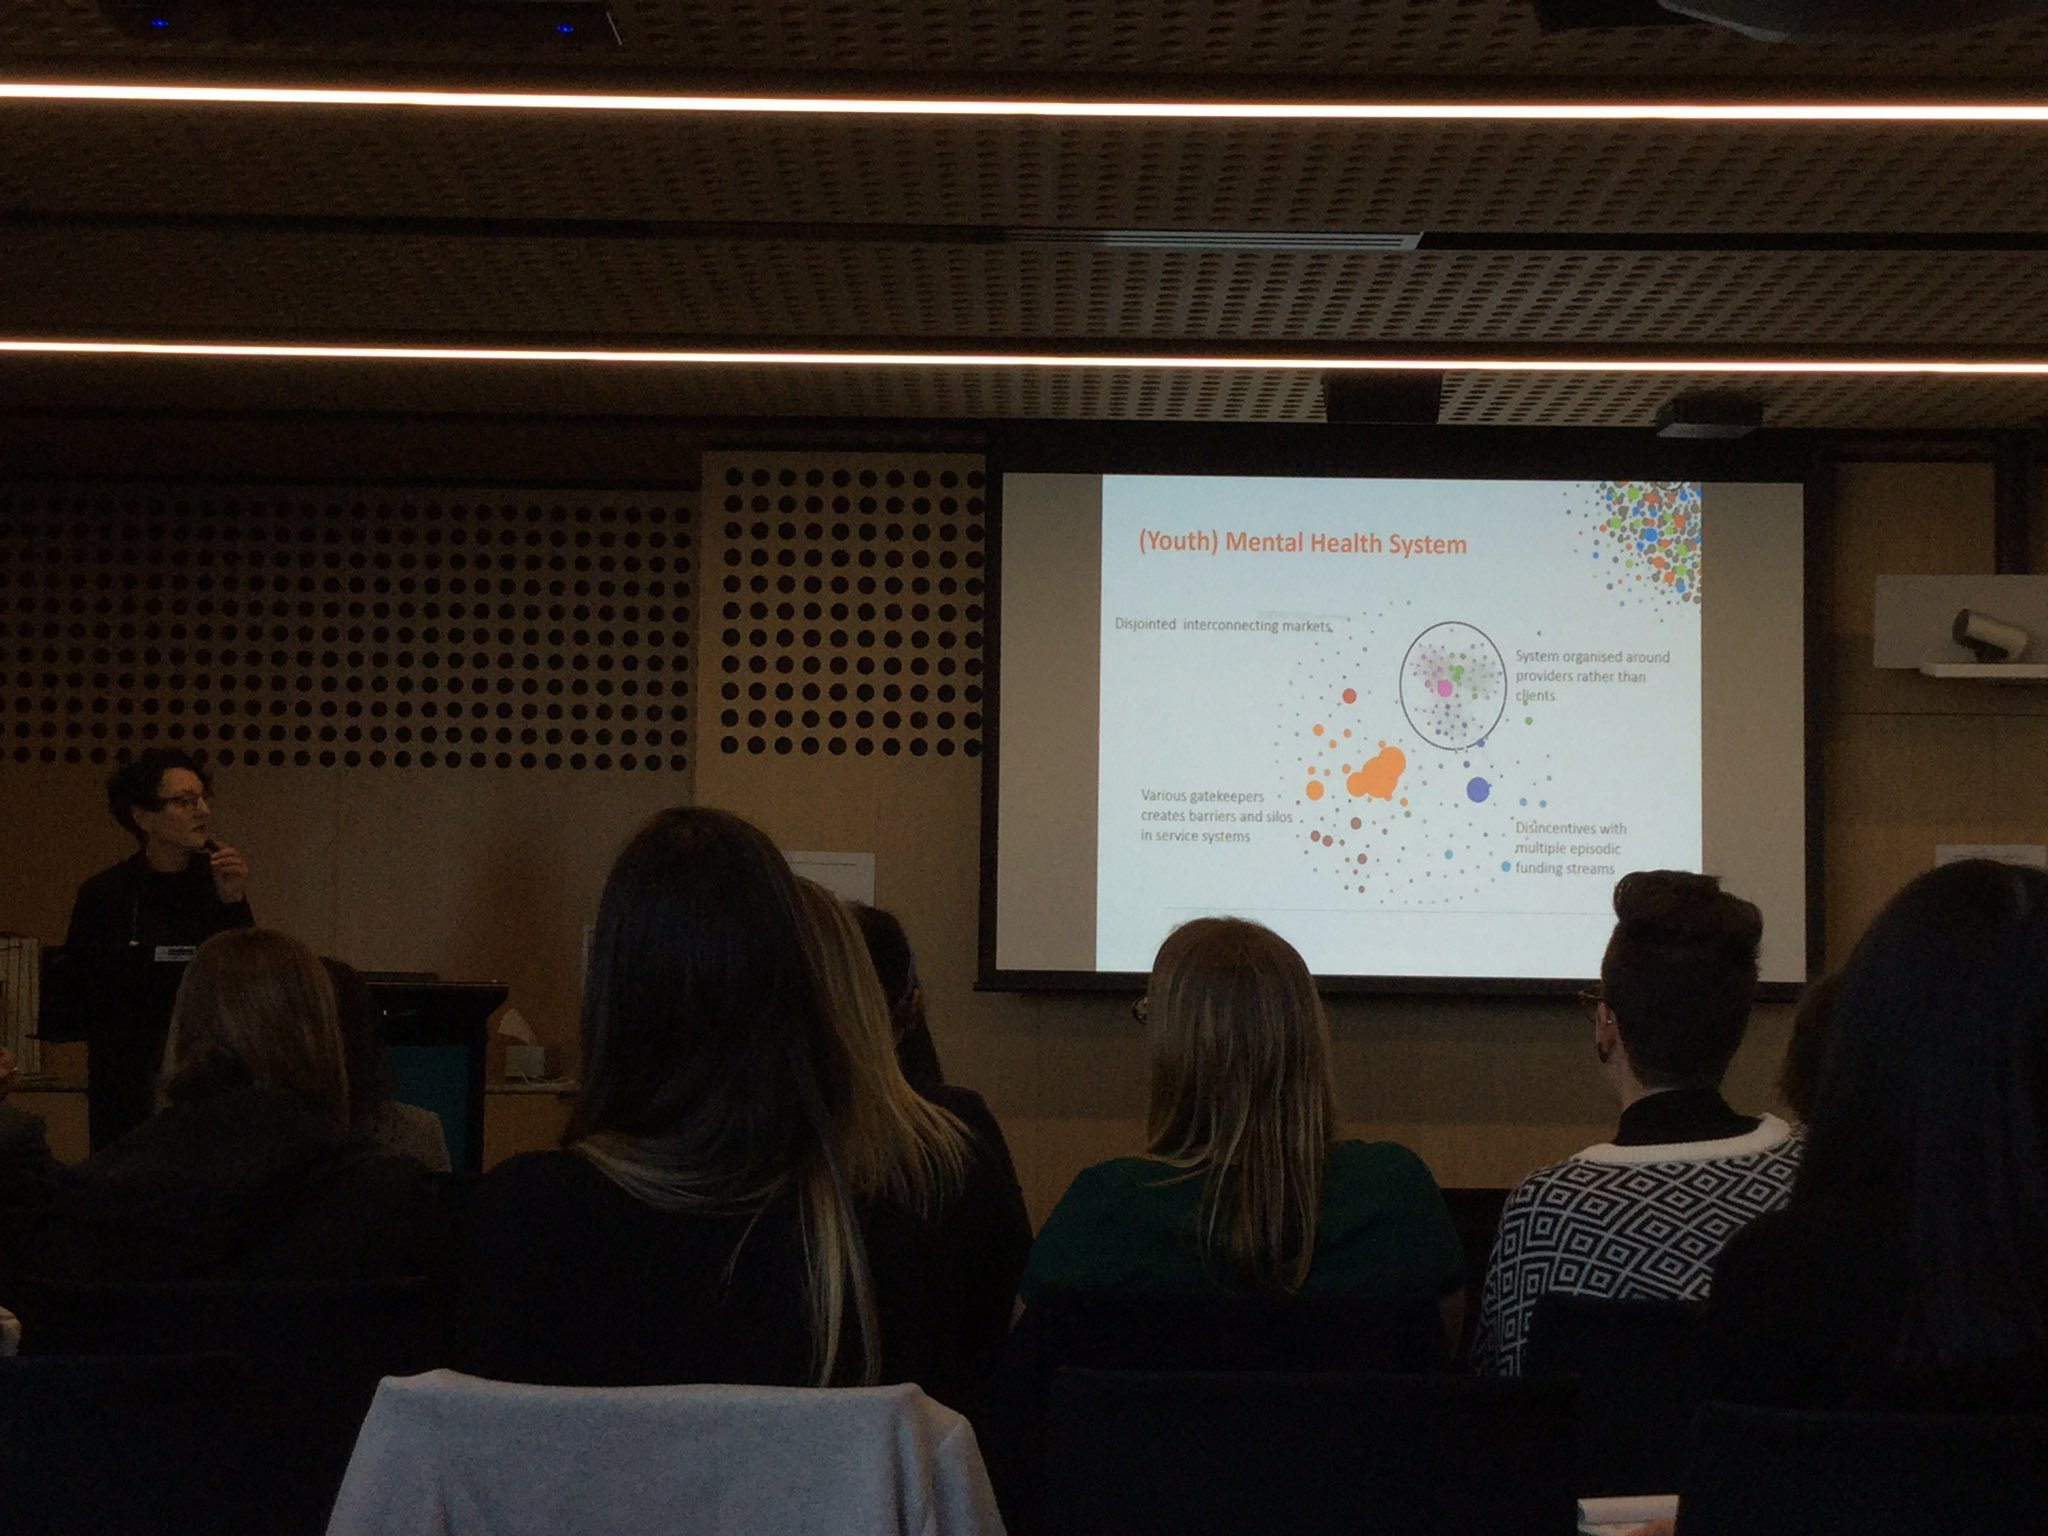 Exploring the role of occupational therapists in a headspace centre with Alison McRoberts & Liz Burgat  #mhotsymp2017 @DeakinHealth @otaust https://t.co/HqEXMGi0Cs